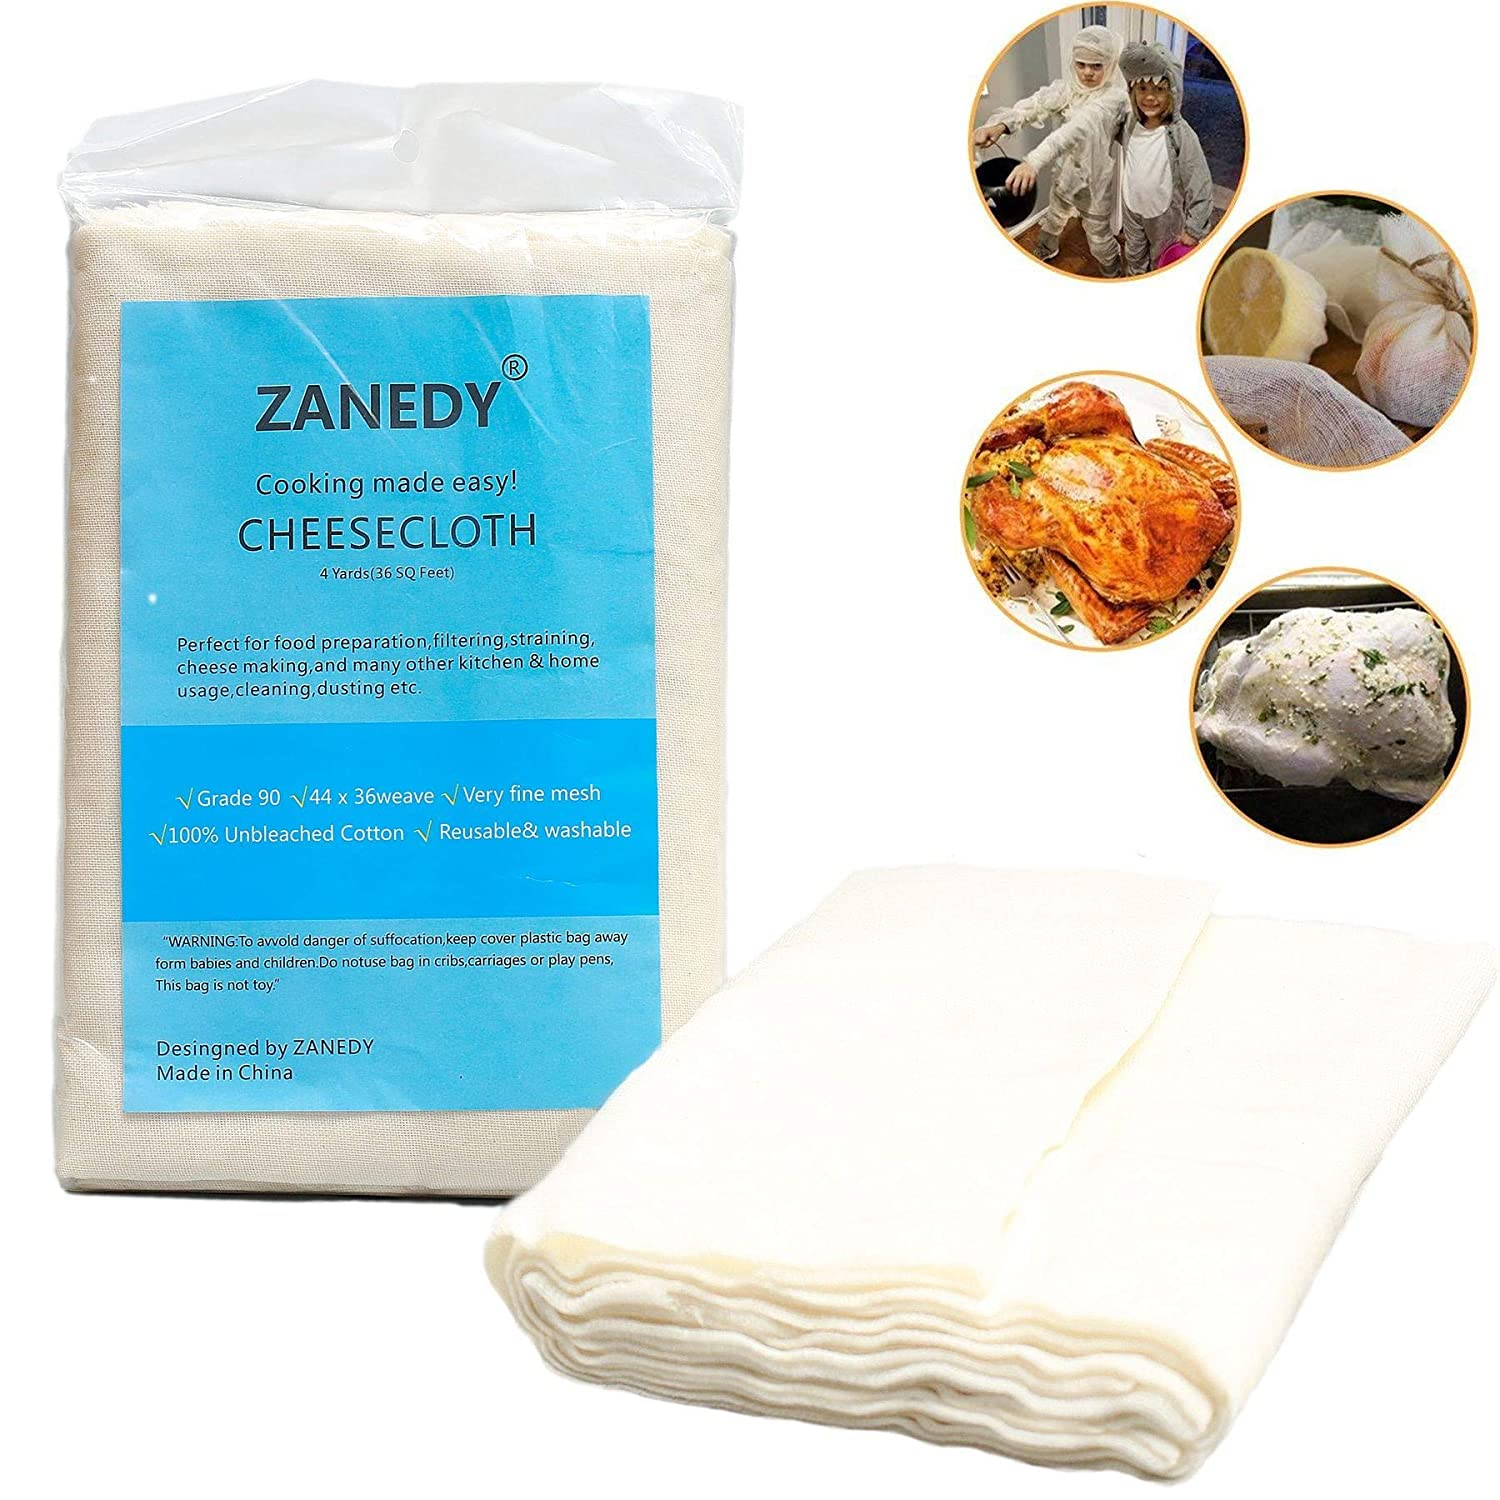 Cheesecloth 100% Unbleached Cotton Fabric Ultra Fine Cheesecloth for Cooking Nut Milk Bag Strainer Filter (Grade 90 4Yards By Zanedy)